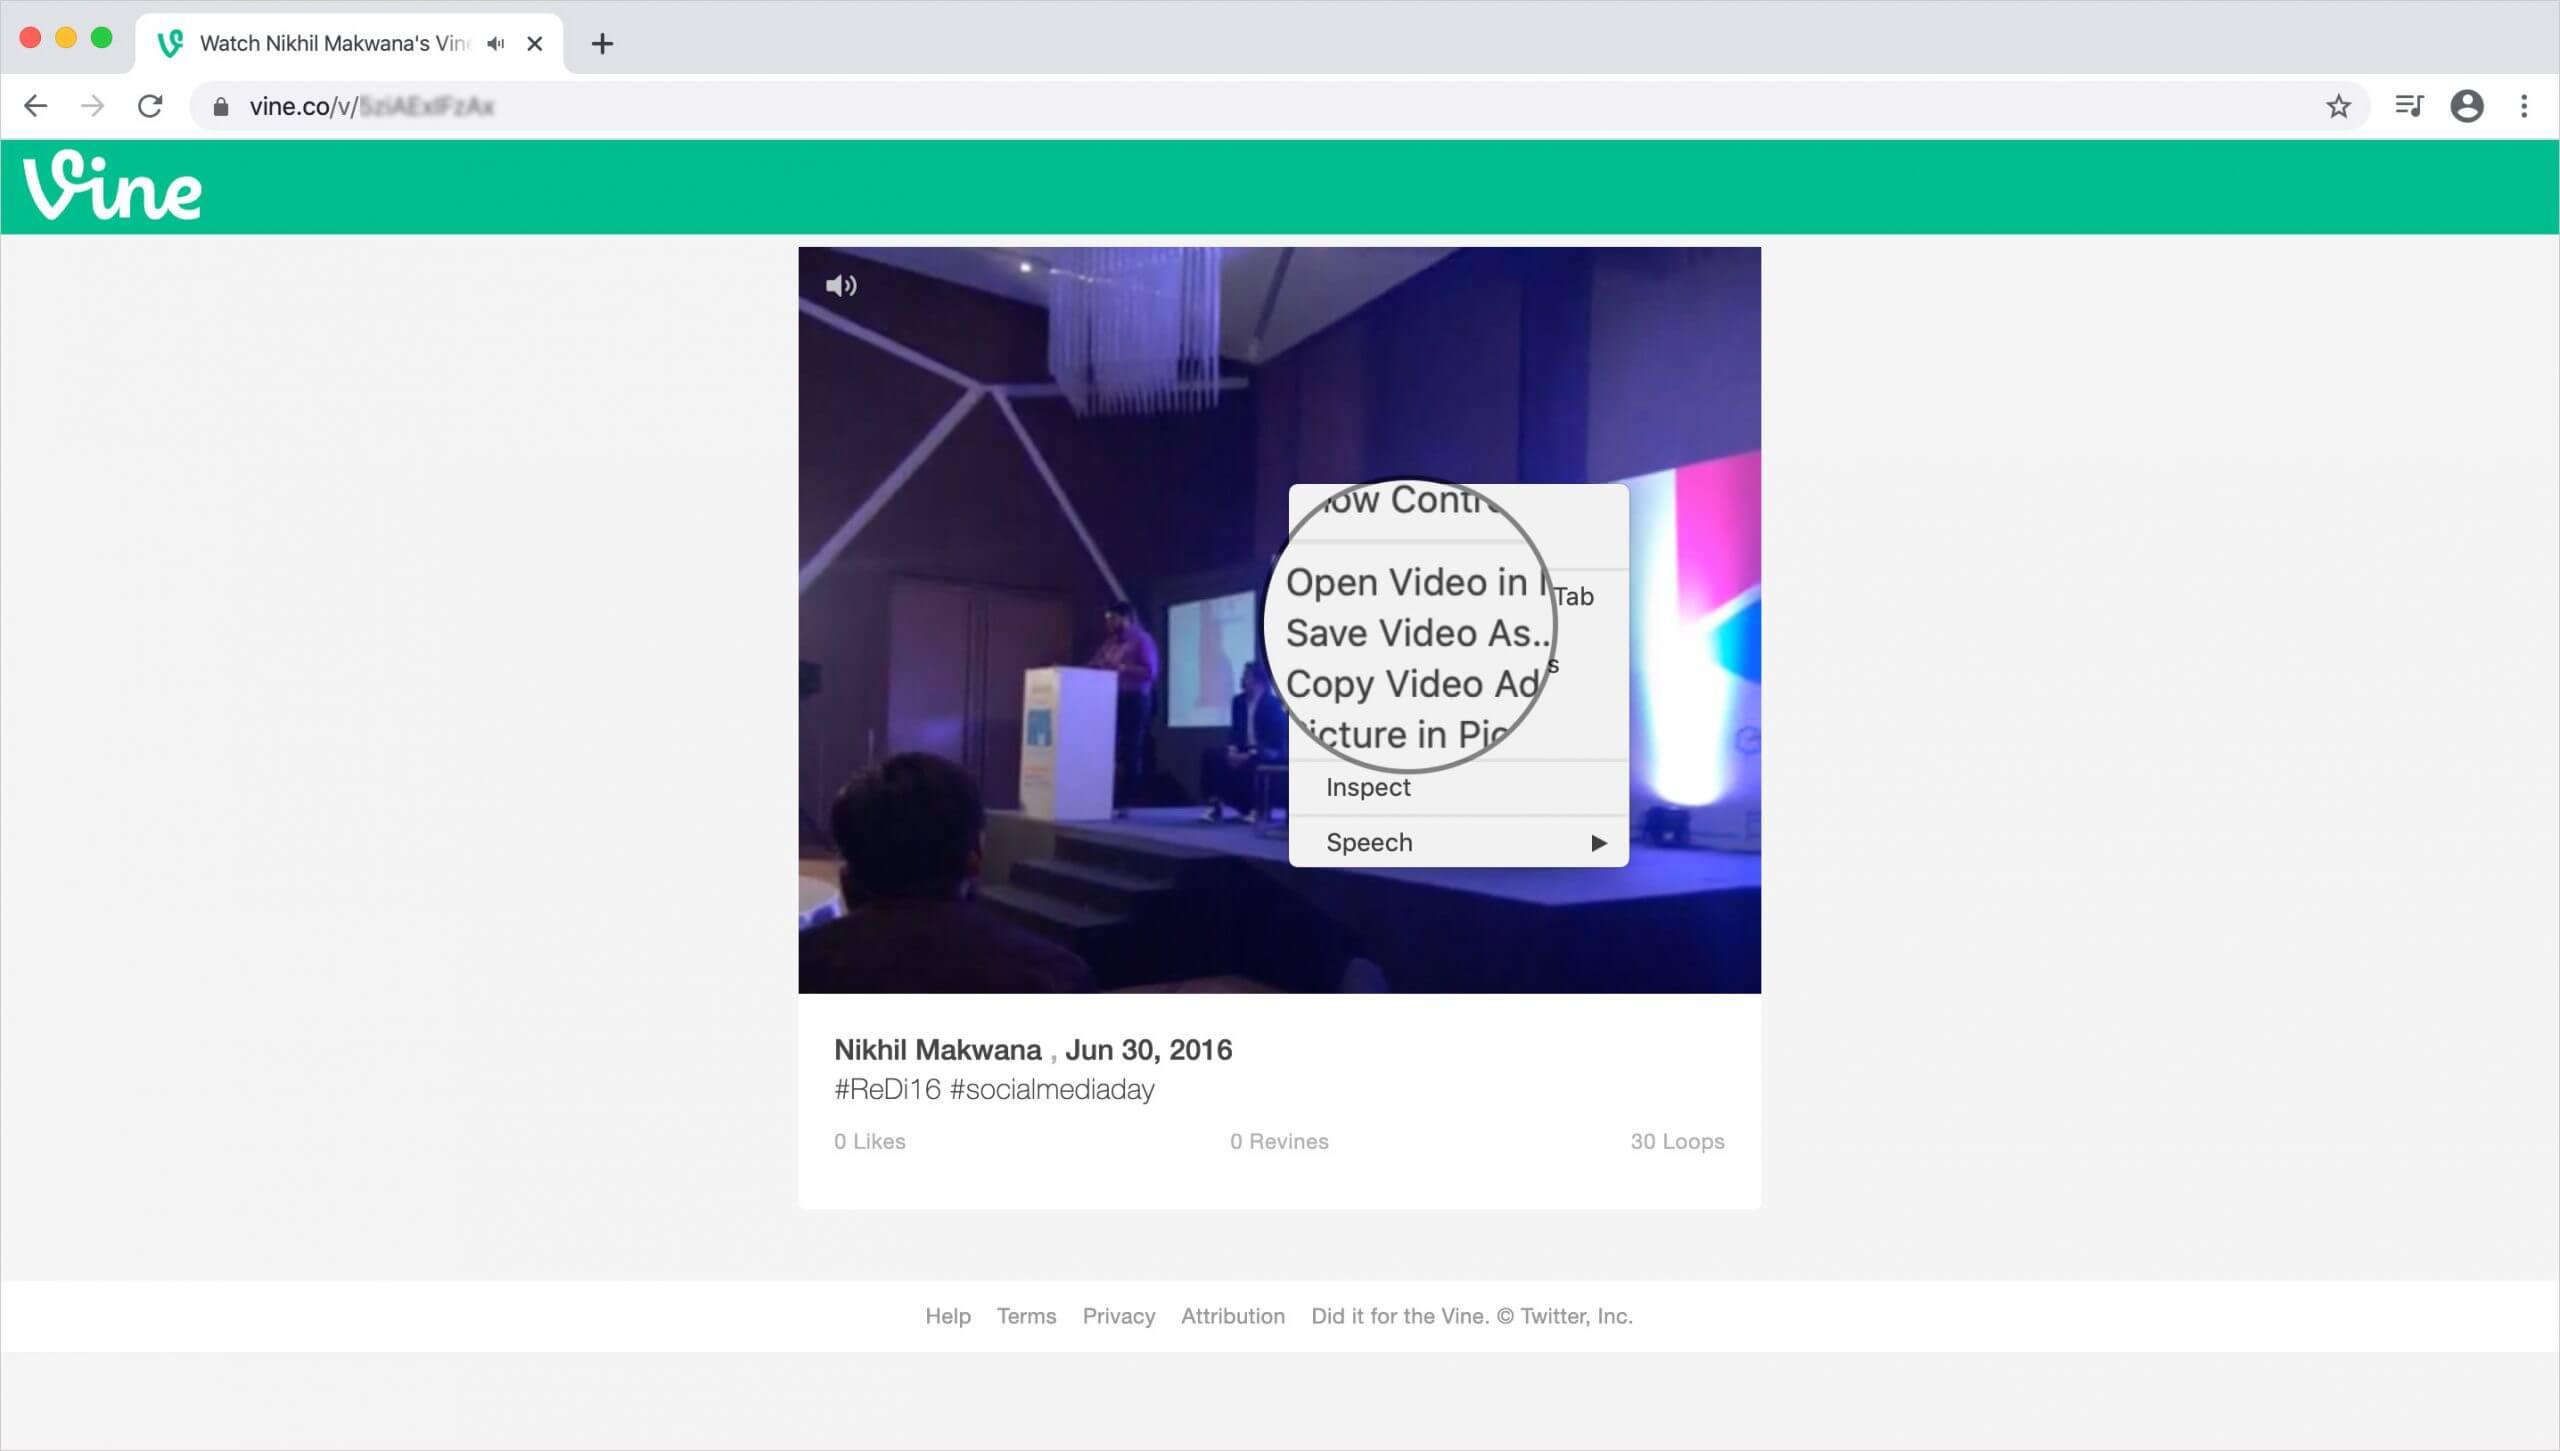 Place your mouse pointer on video and do right-click to save video from vine account